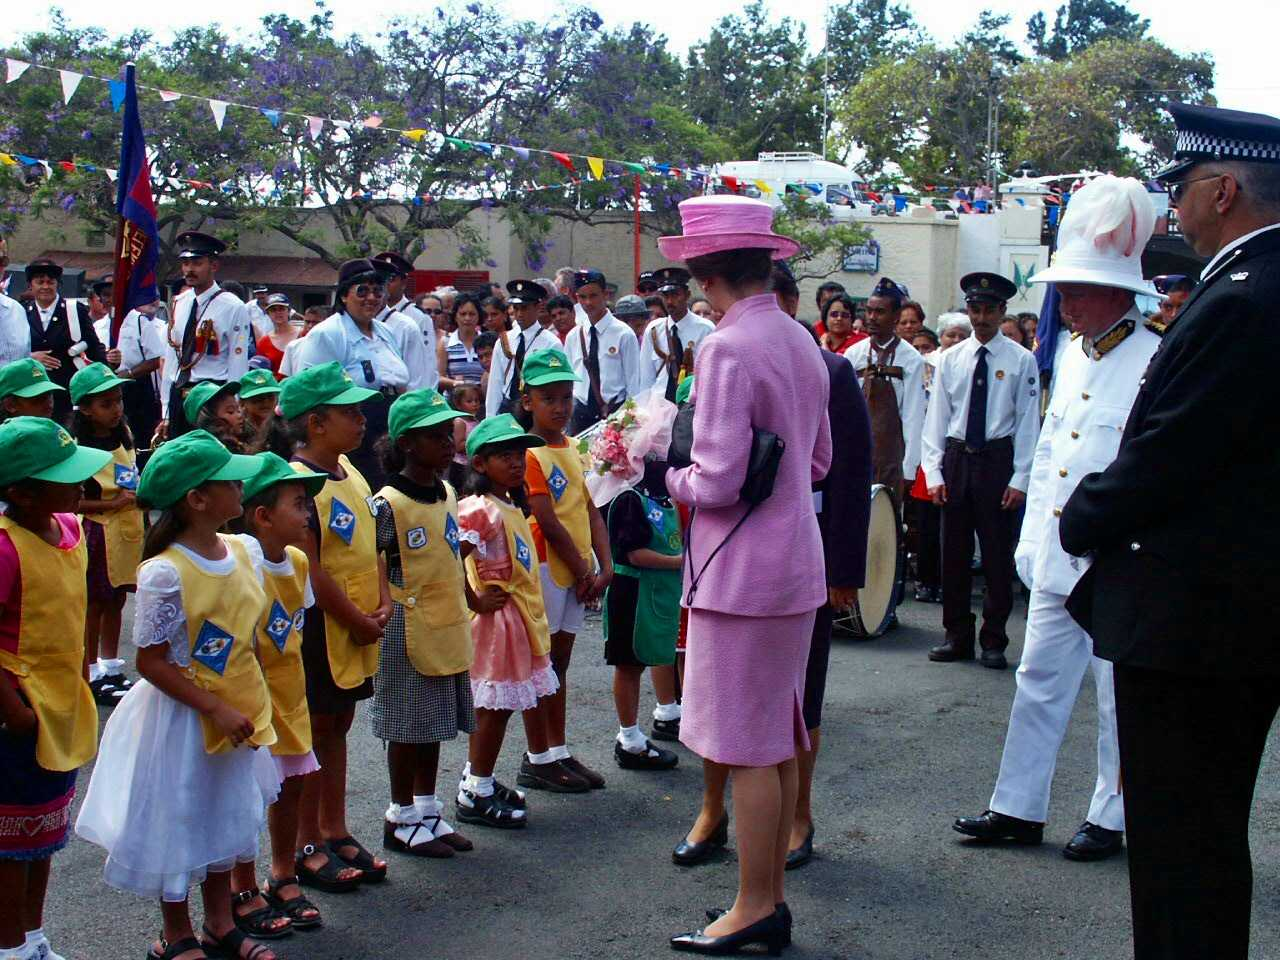 2002: Anne, The Princess Royal Saint Helena Island Info